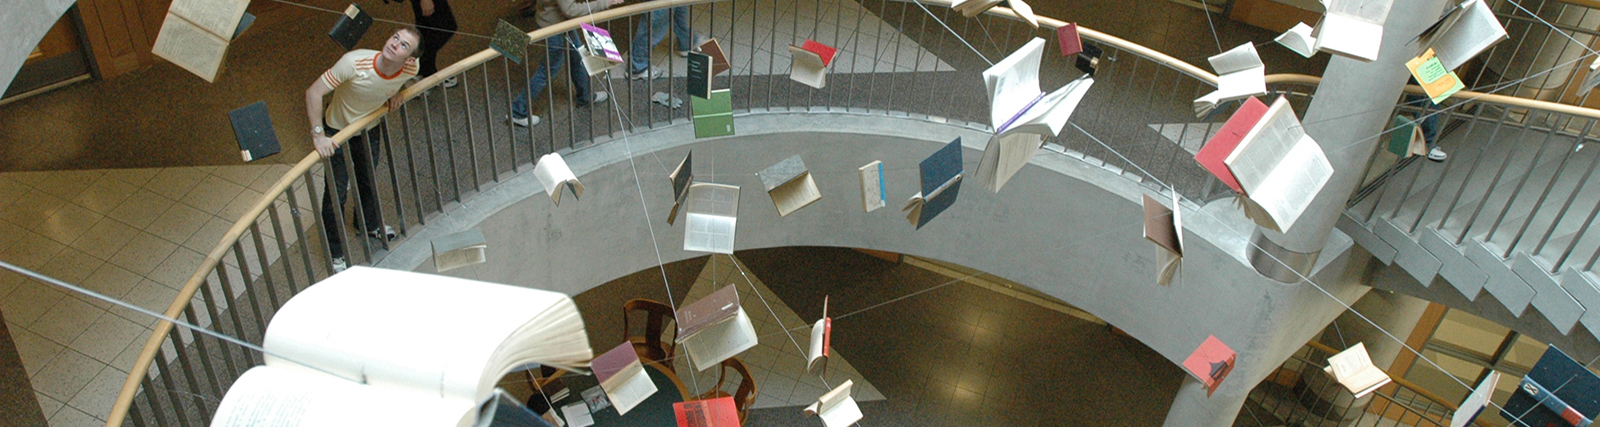 Art installation inside Main Stacks Library in which books are suspended in the air throughout the stairwell.